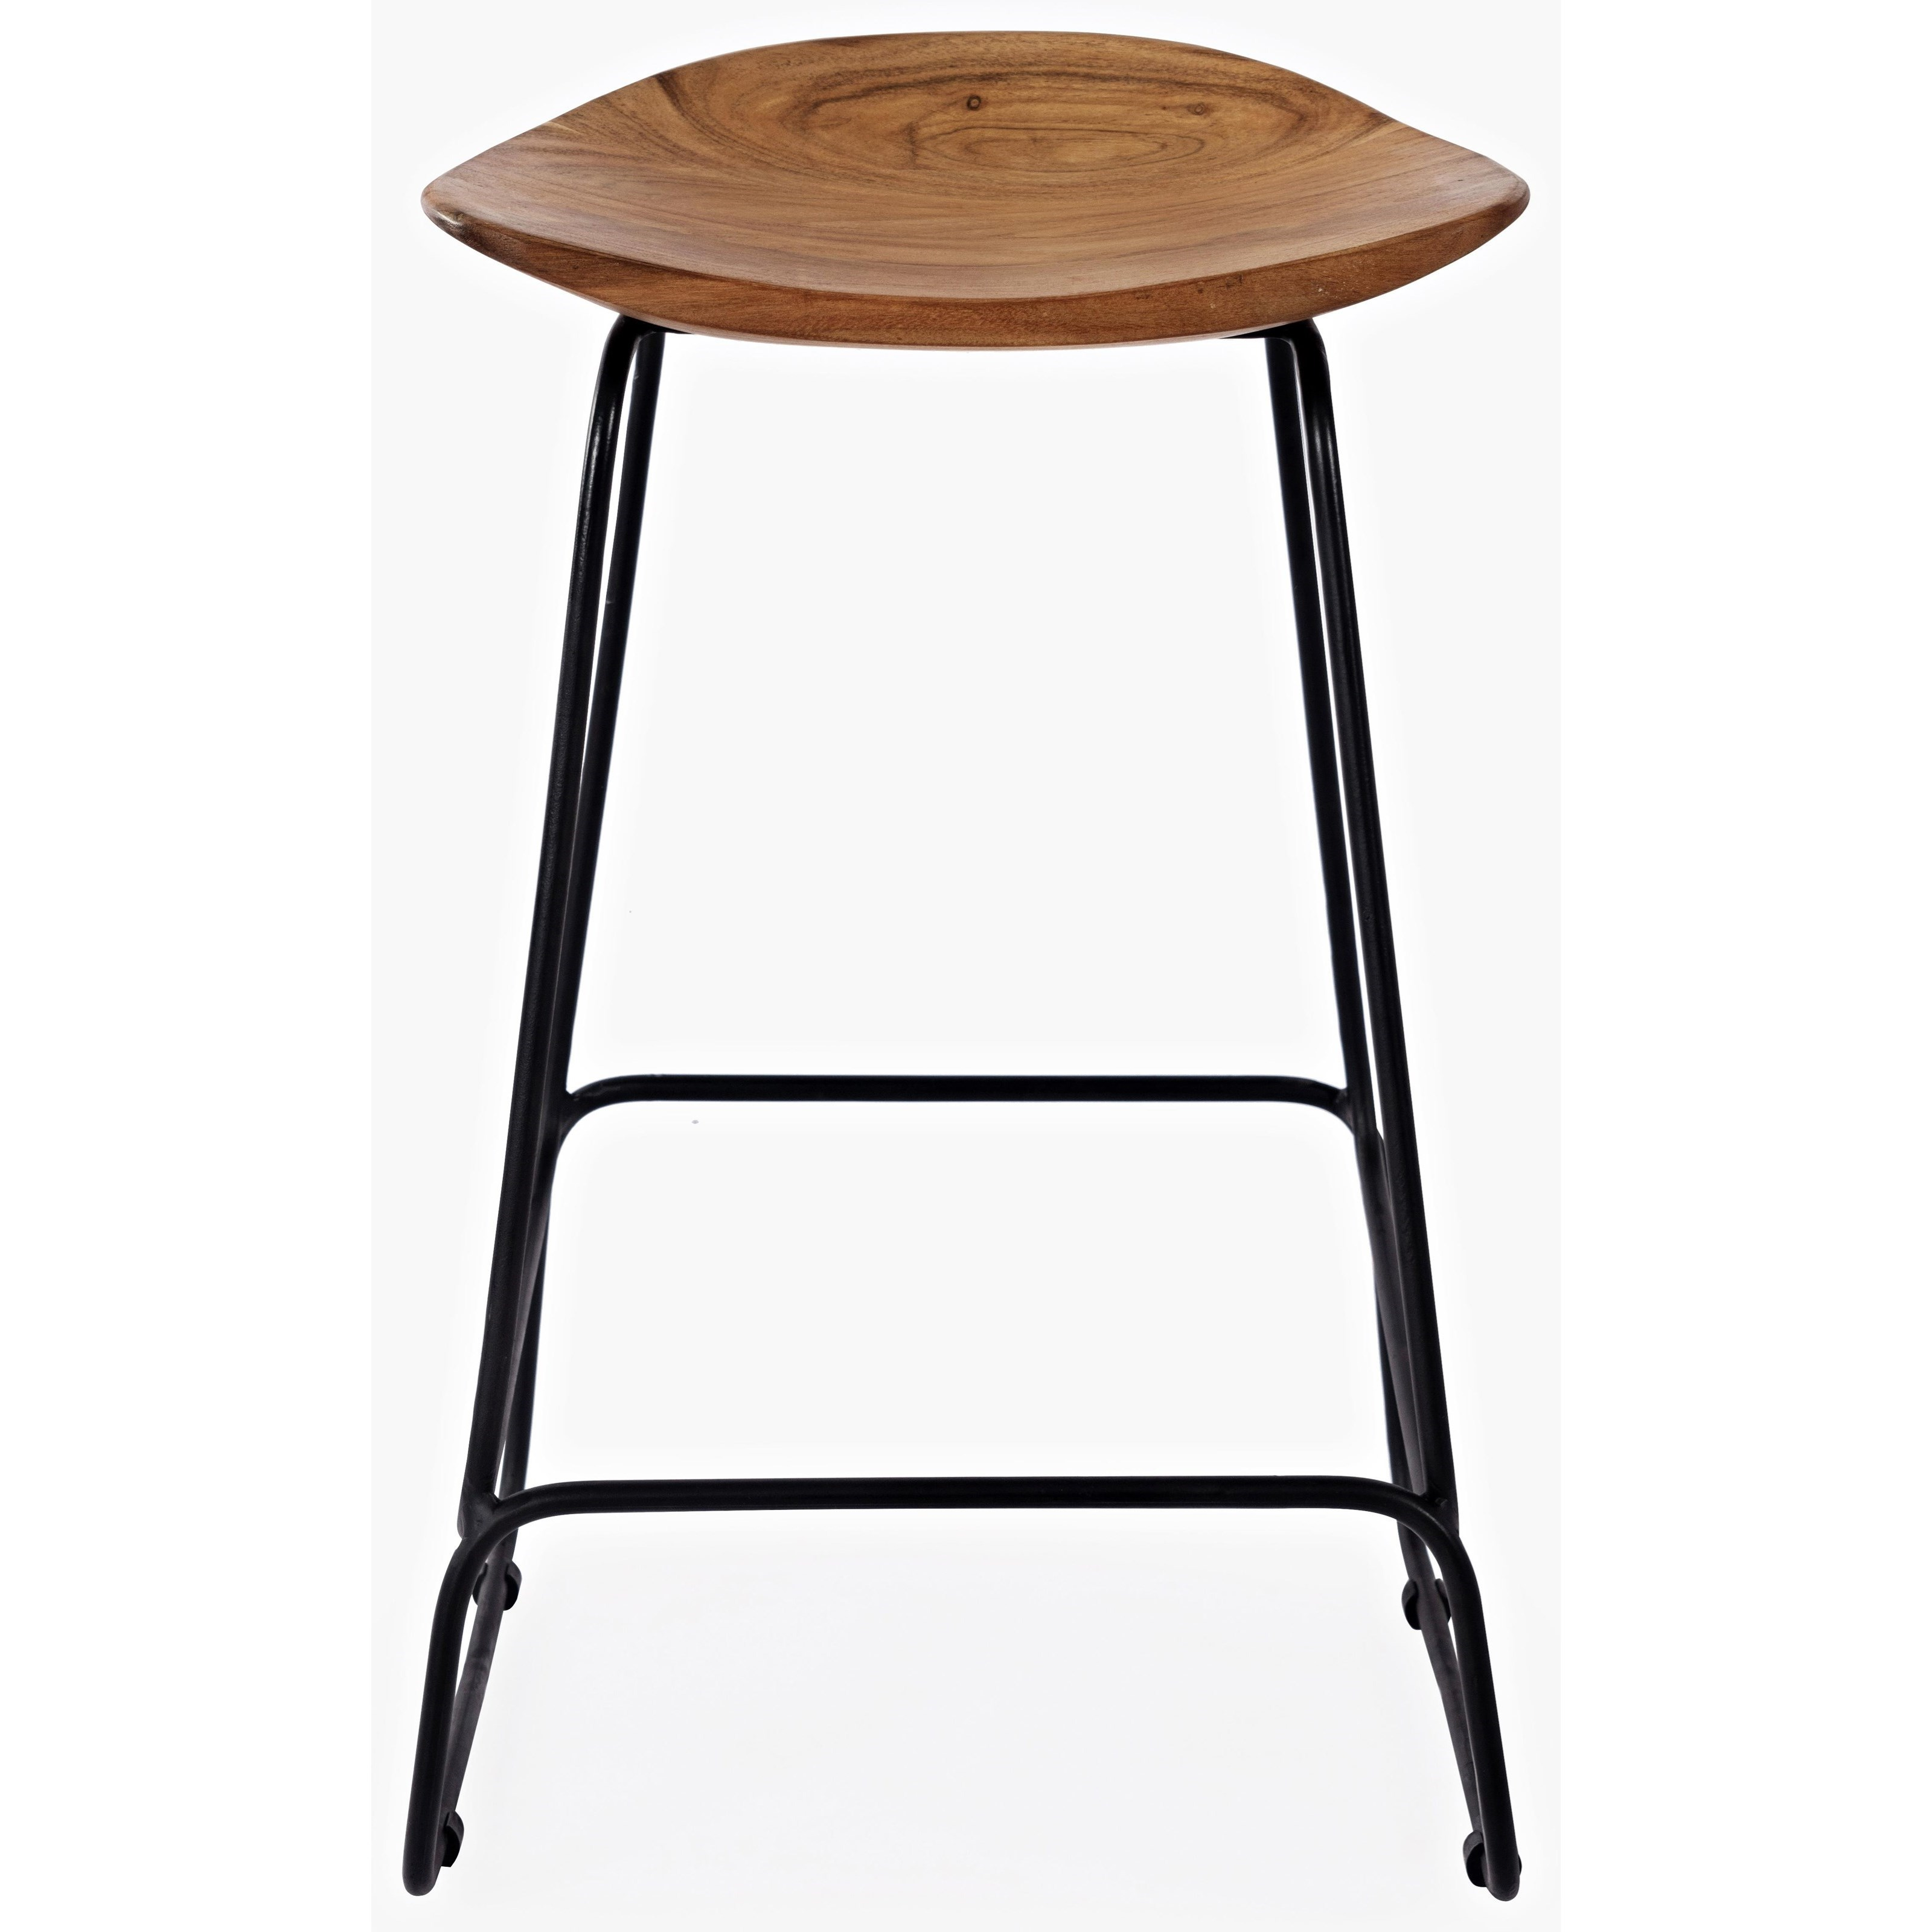 Live Edge Natural Backless counter height bar Stool at Walker's Furniture